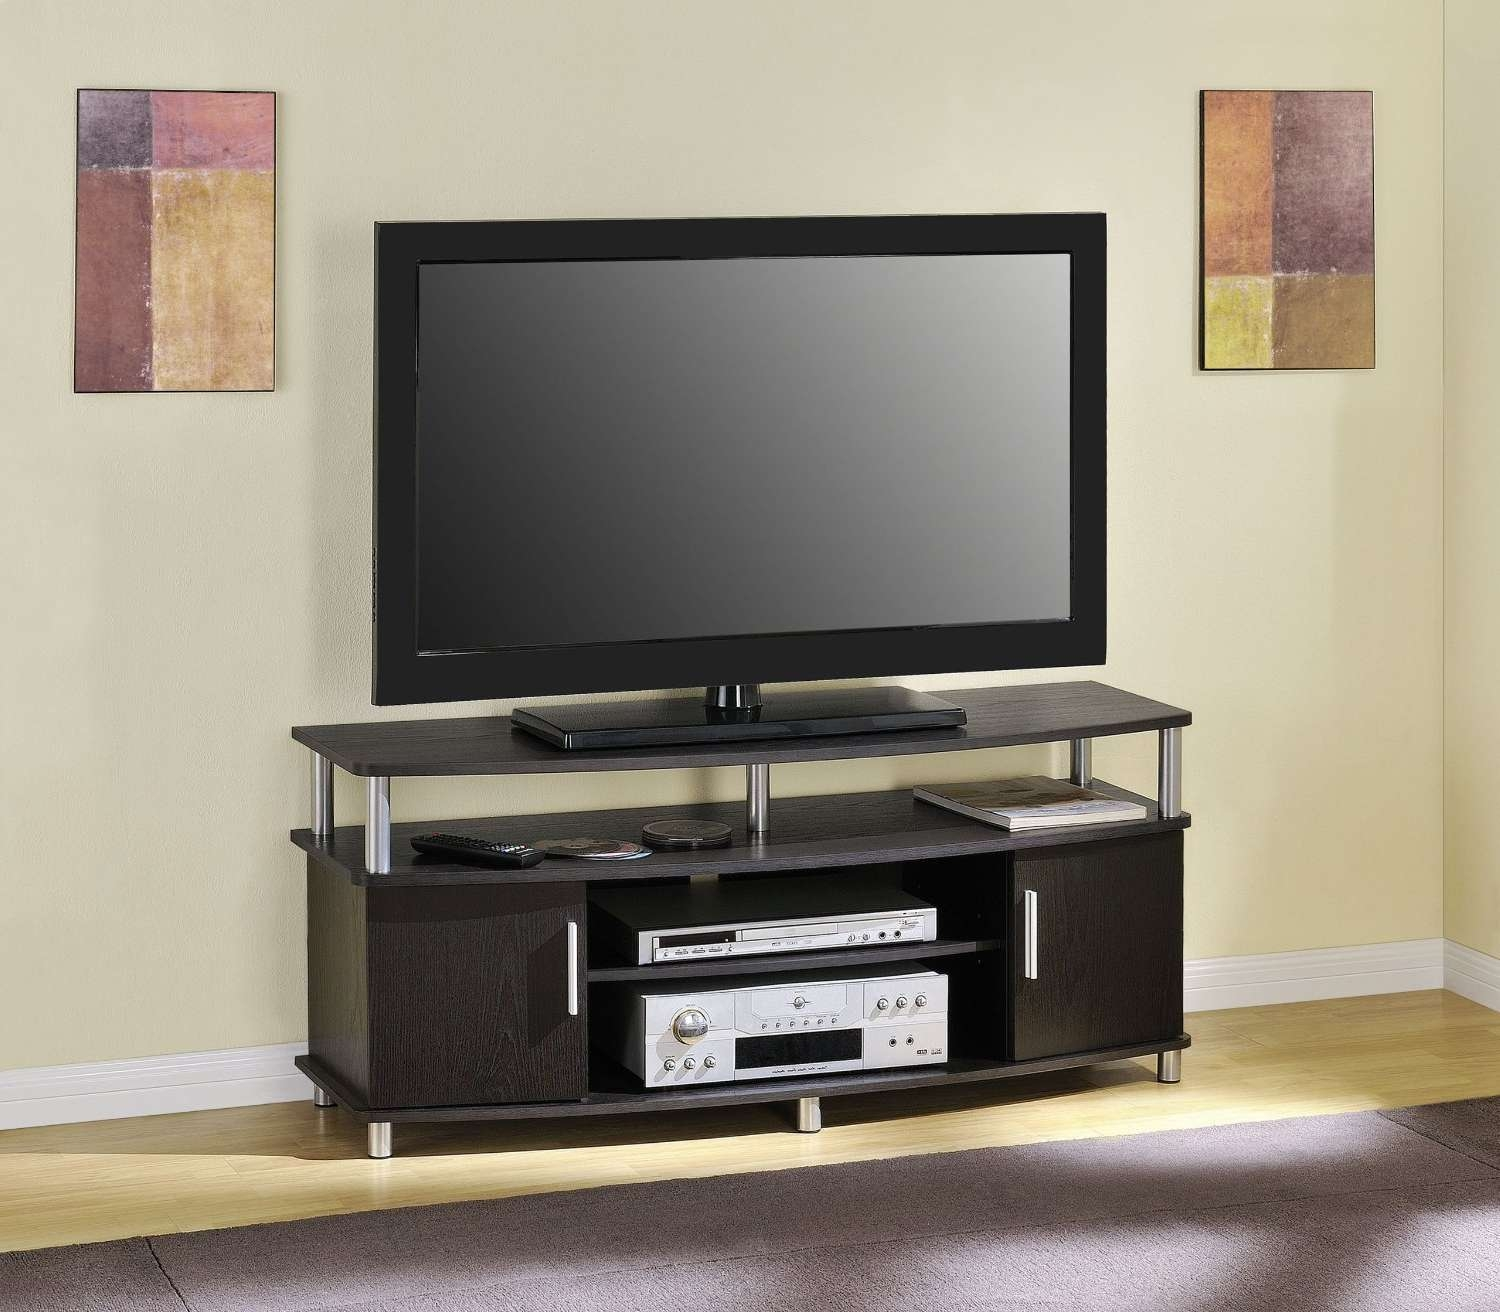 Perfect Corner Tv Stands For Flat Screen Tvs 60 With Additional For Corner Tv Stands For 60 Inch Flat Screens (View 13 of 15)